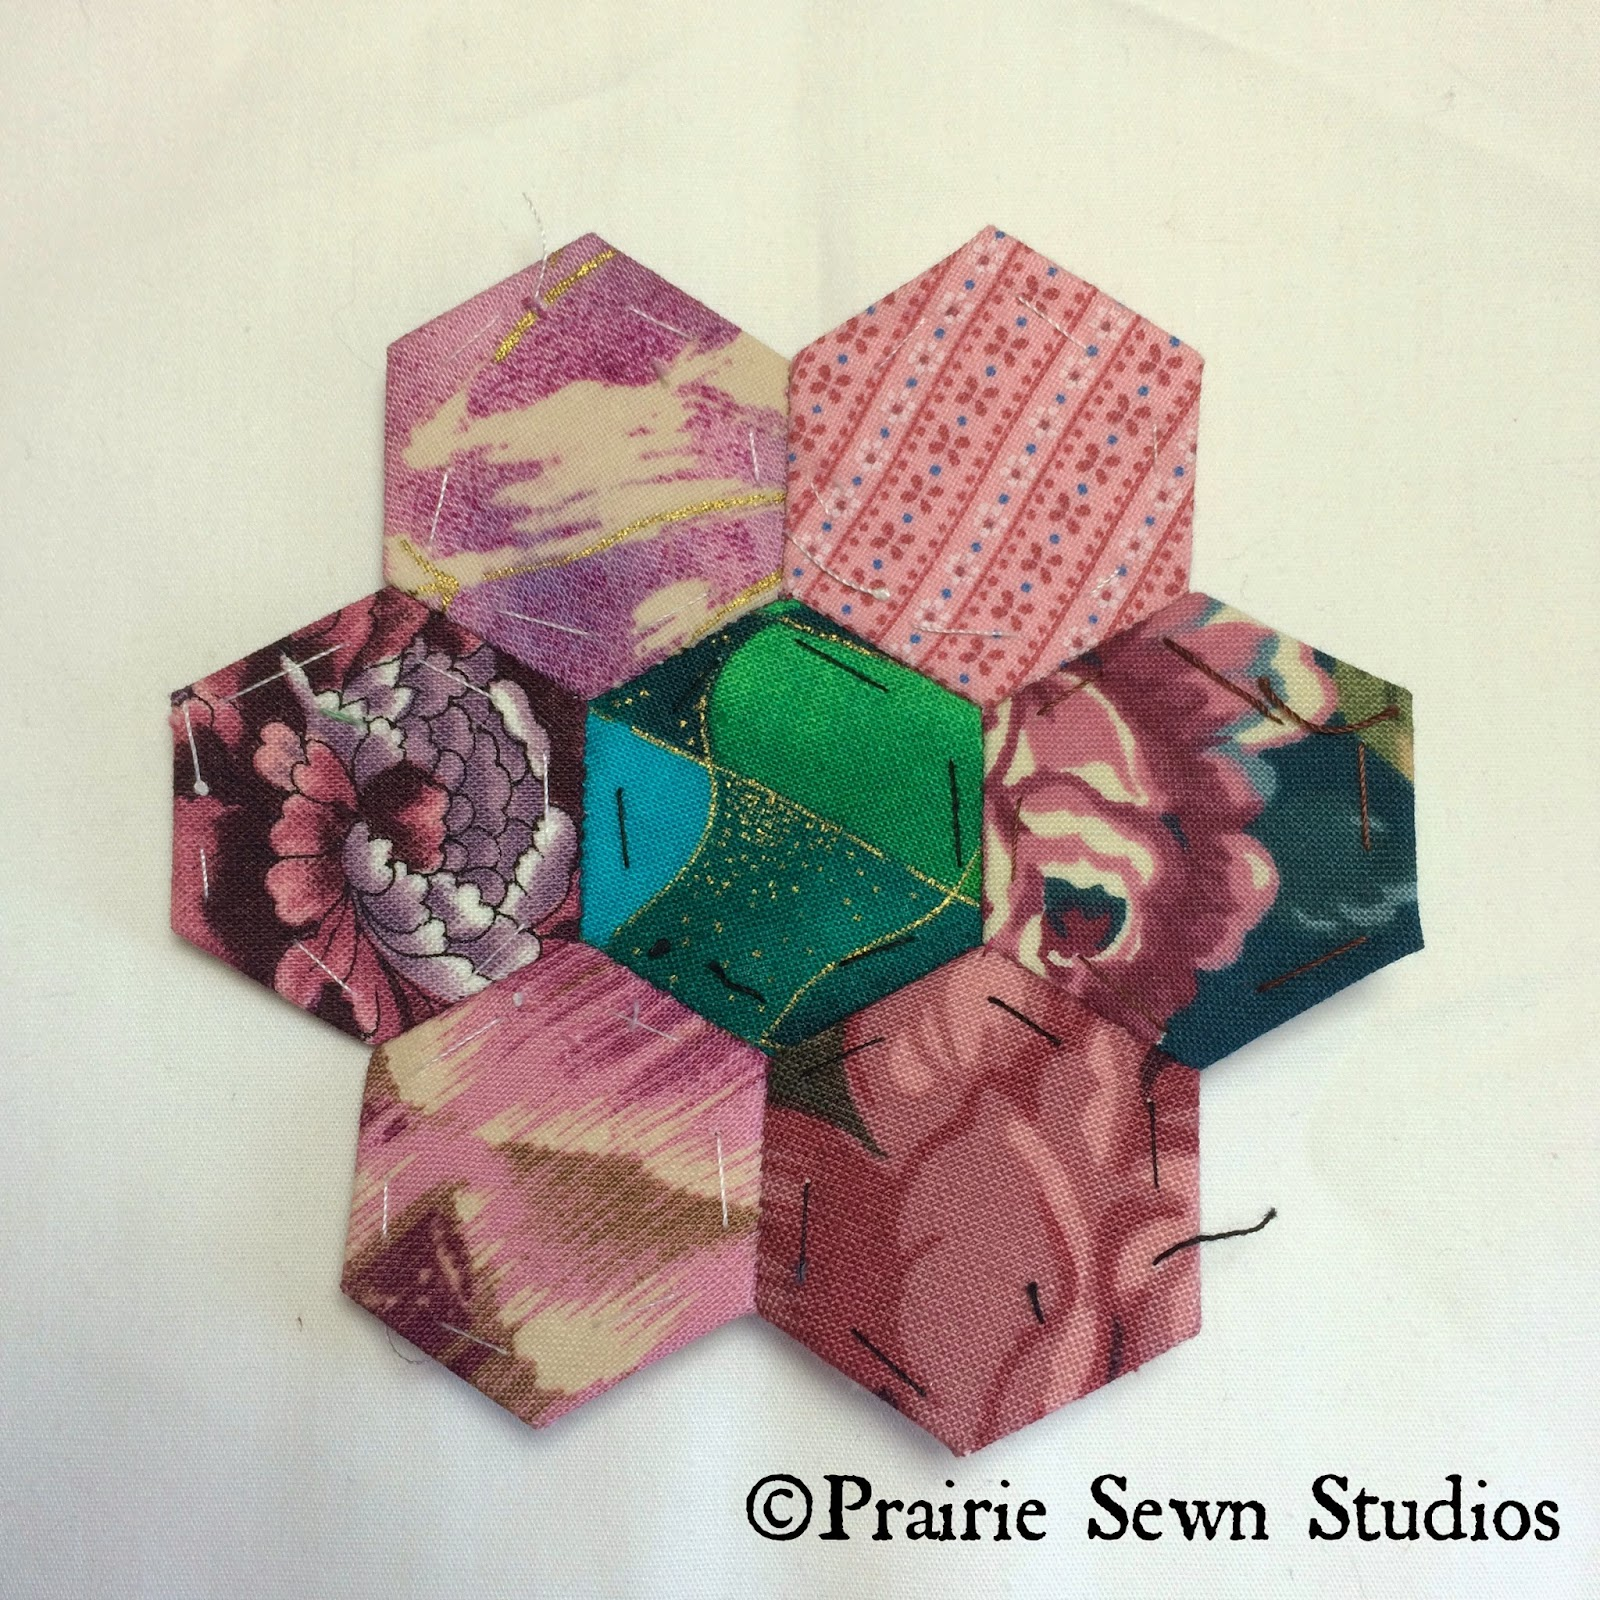 Prairie Sewn Studios Grandmother's Flower Garden Hexagon